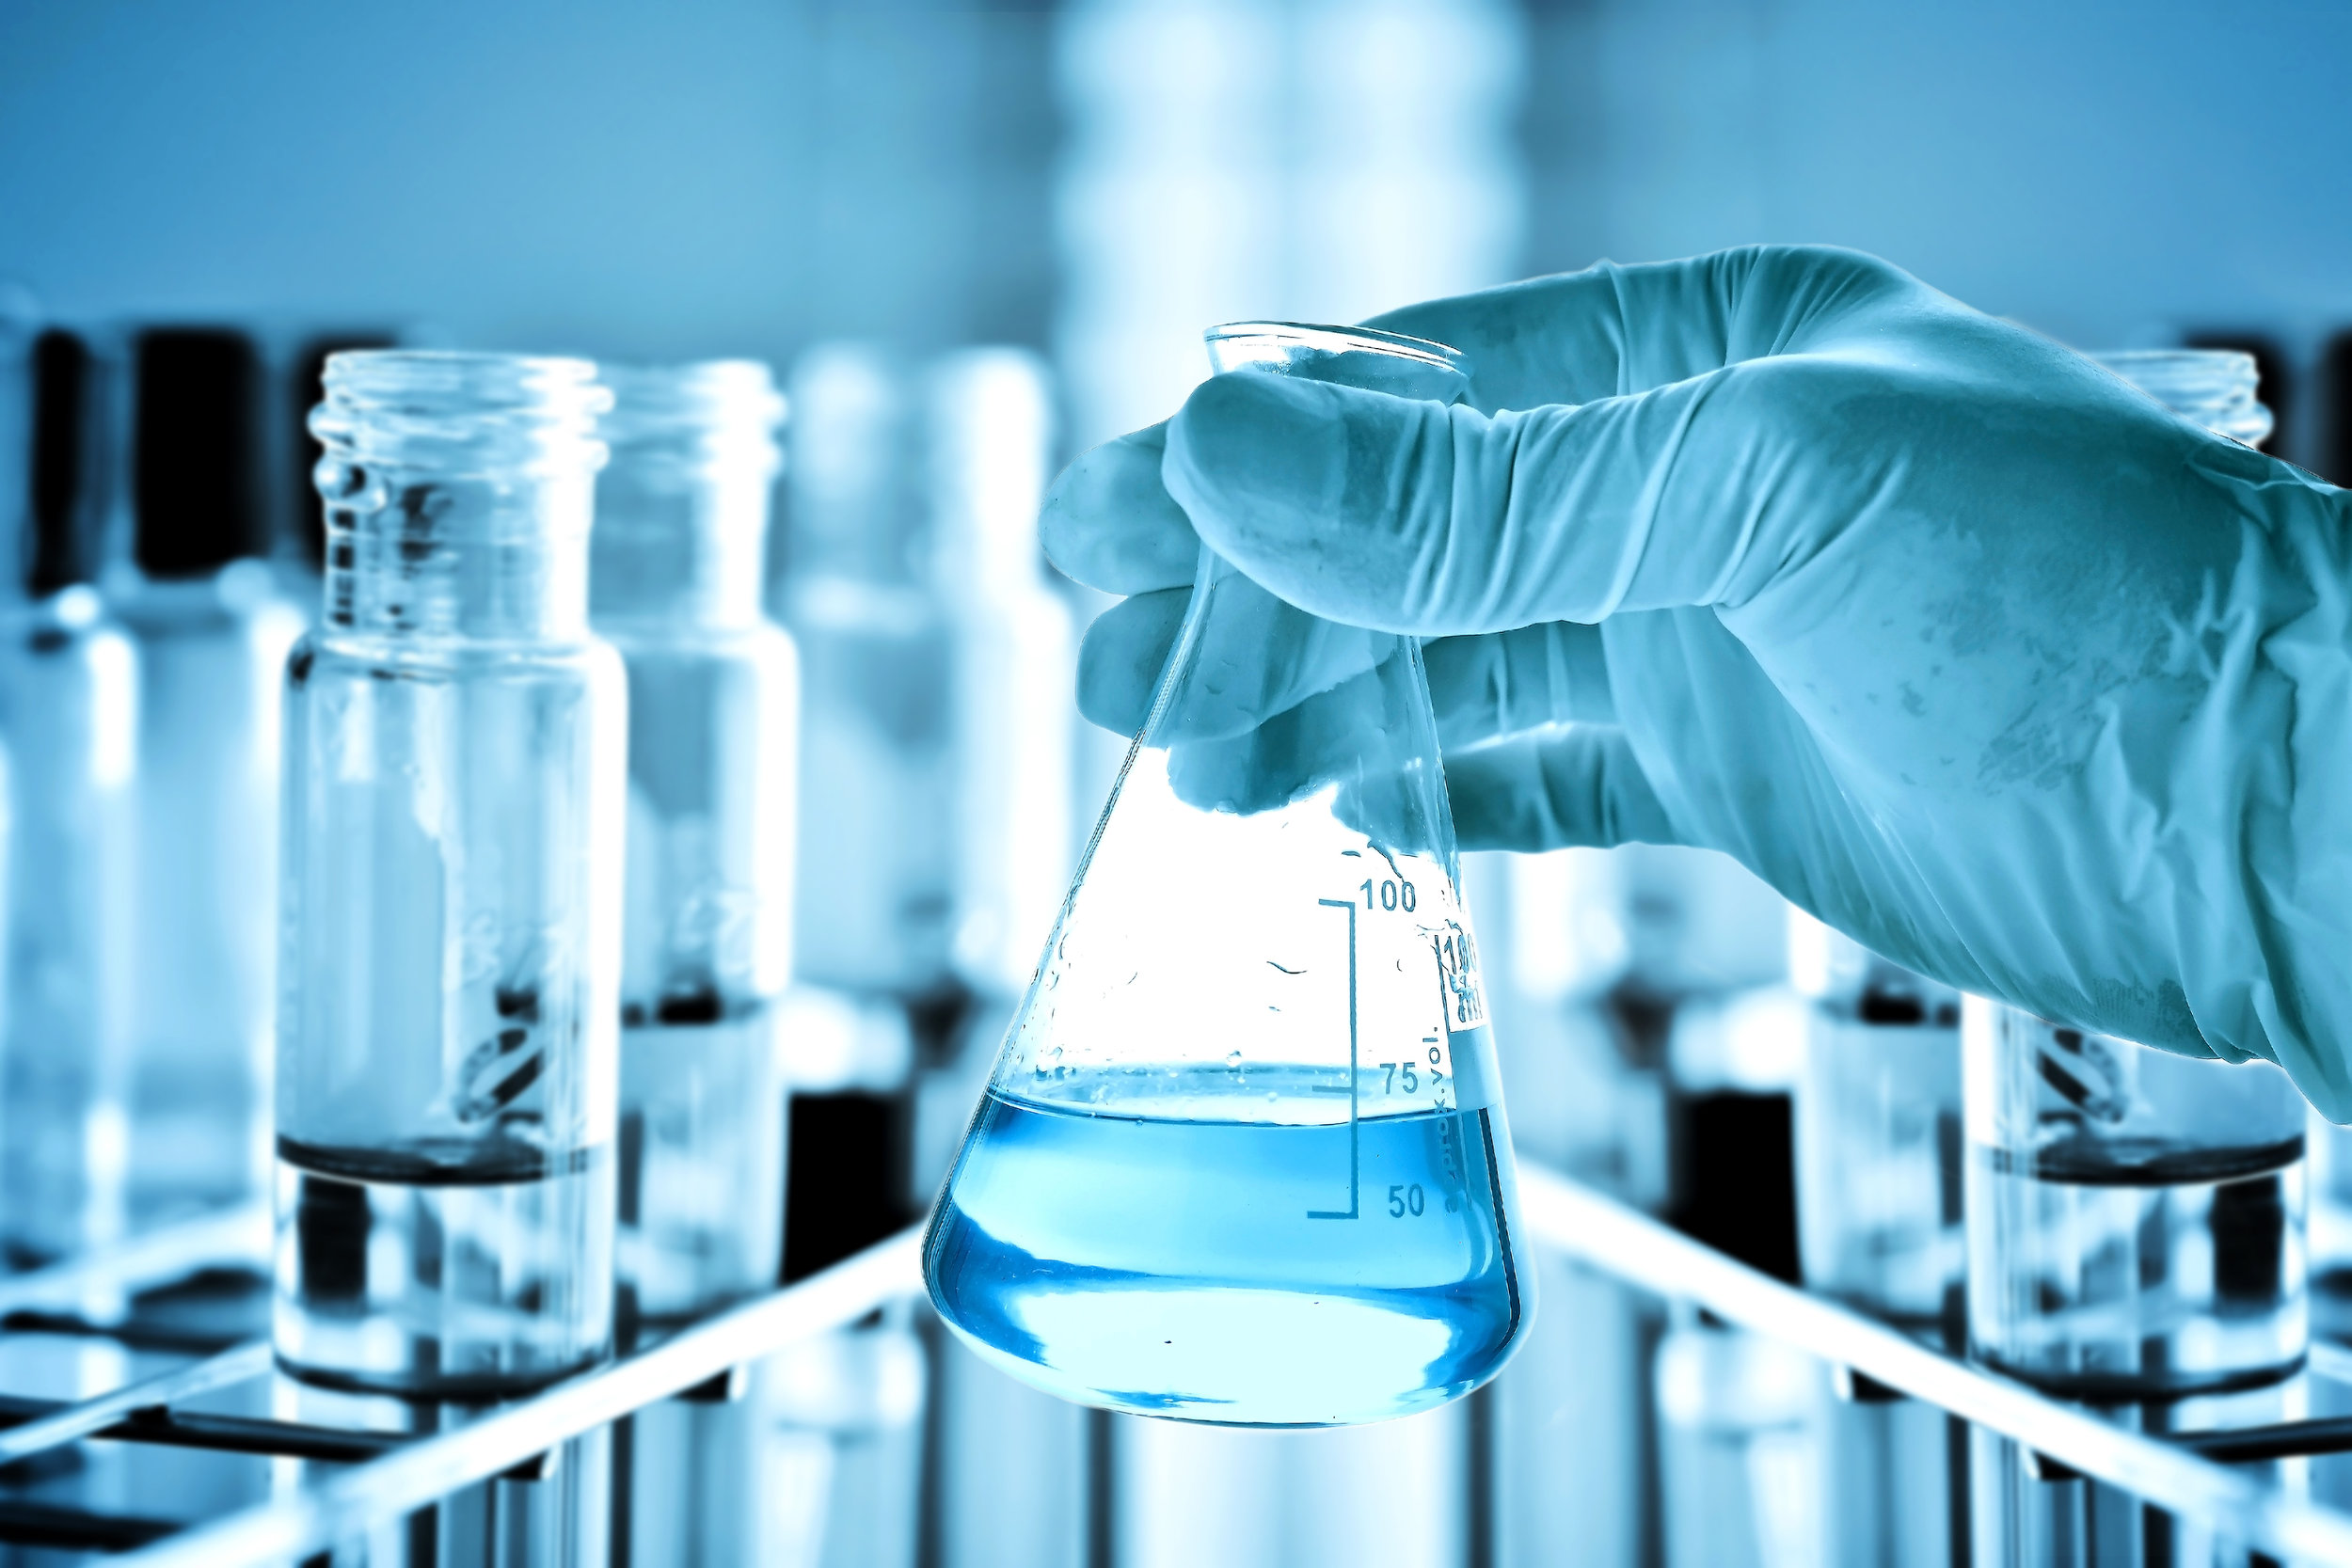 Analytical testing laboratory that provides special project accommodation